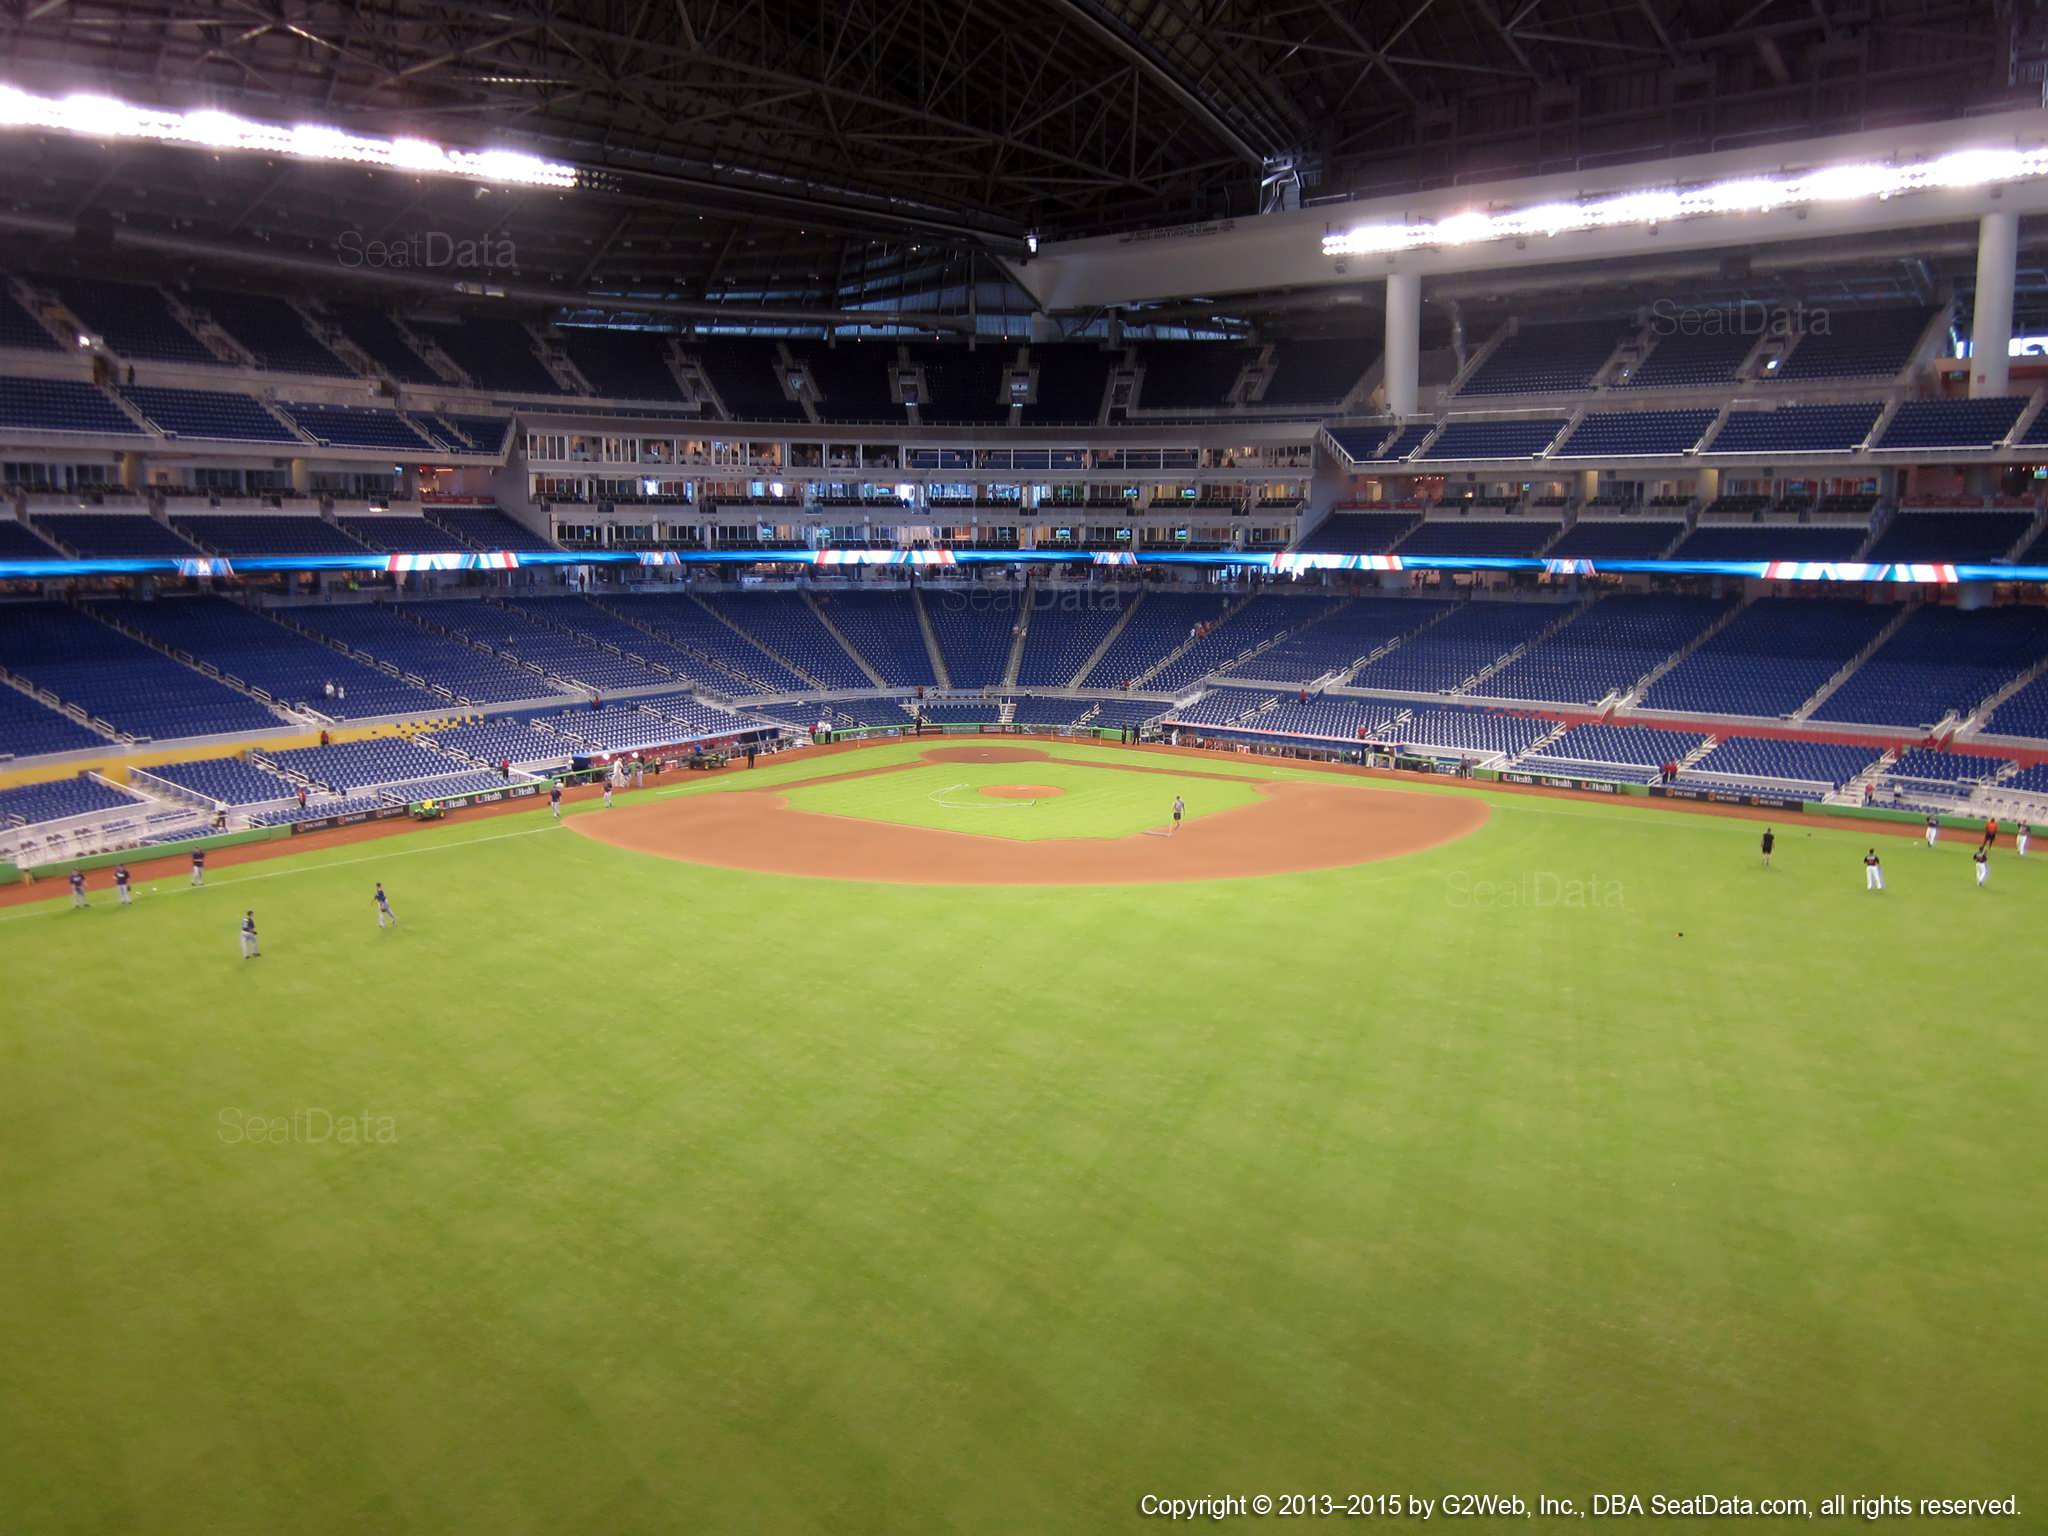 Seat view from section 135 at Marlins Park, home of the Miami Marlins